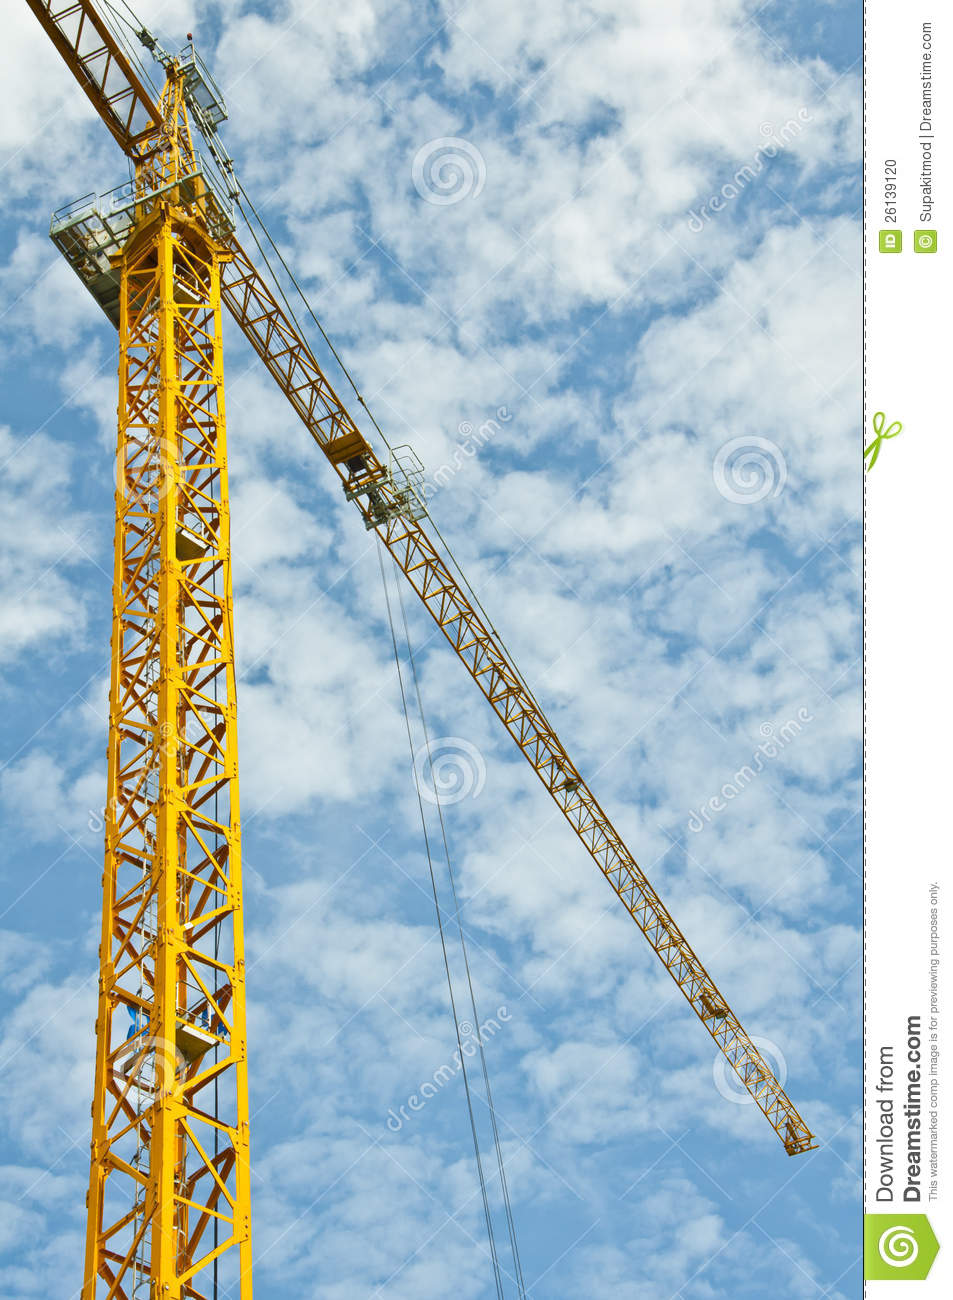 Crane structure stock photo image 26139120 for Structure photography